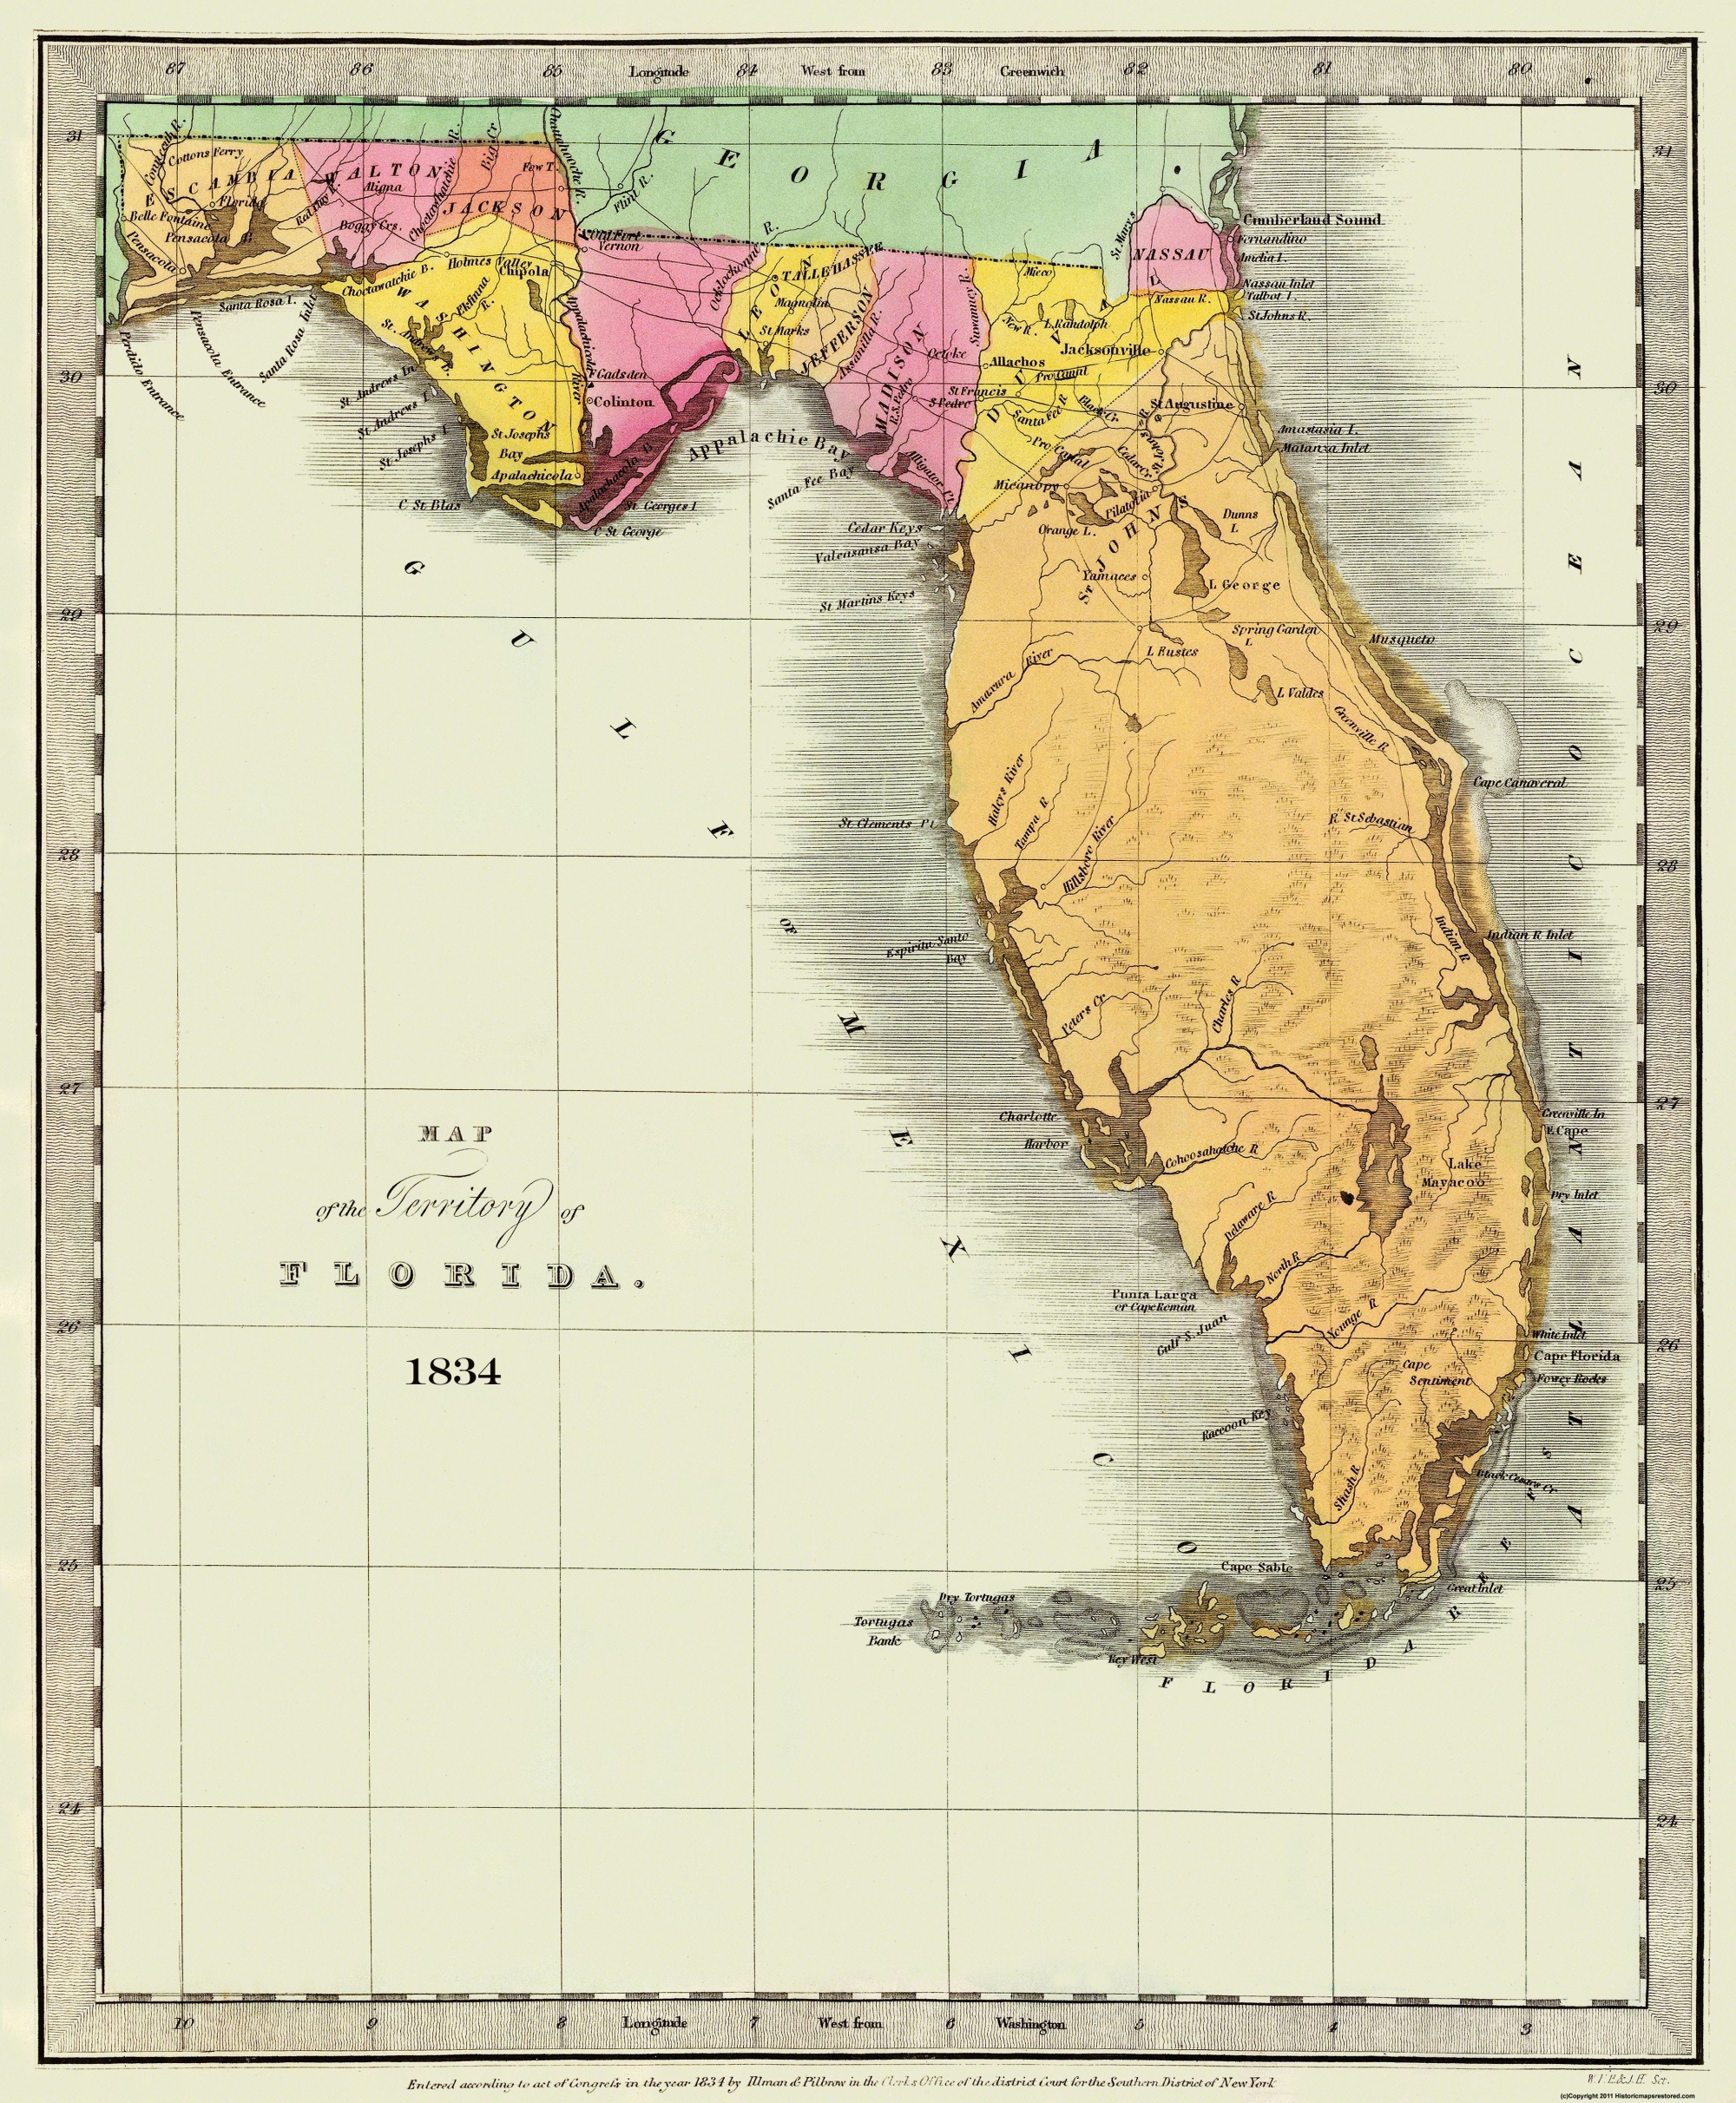 Old State Map - Florida - Burr 1834